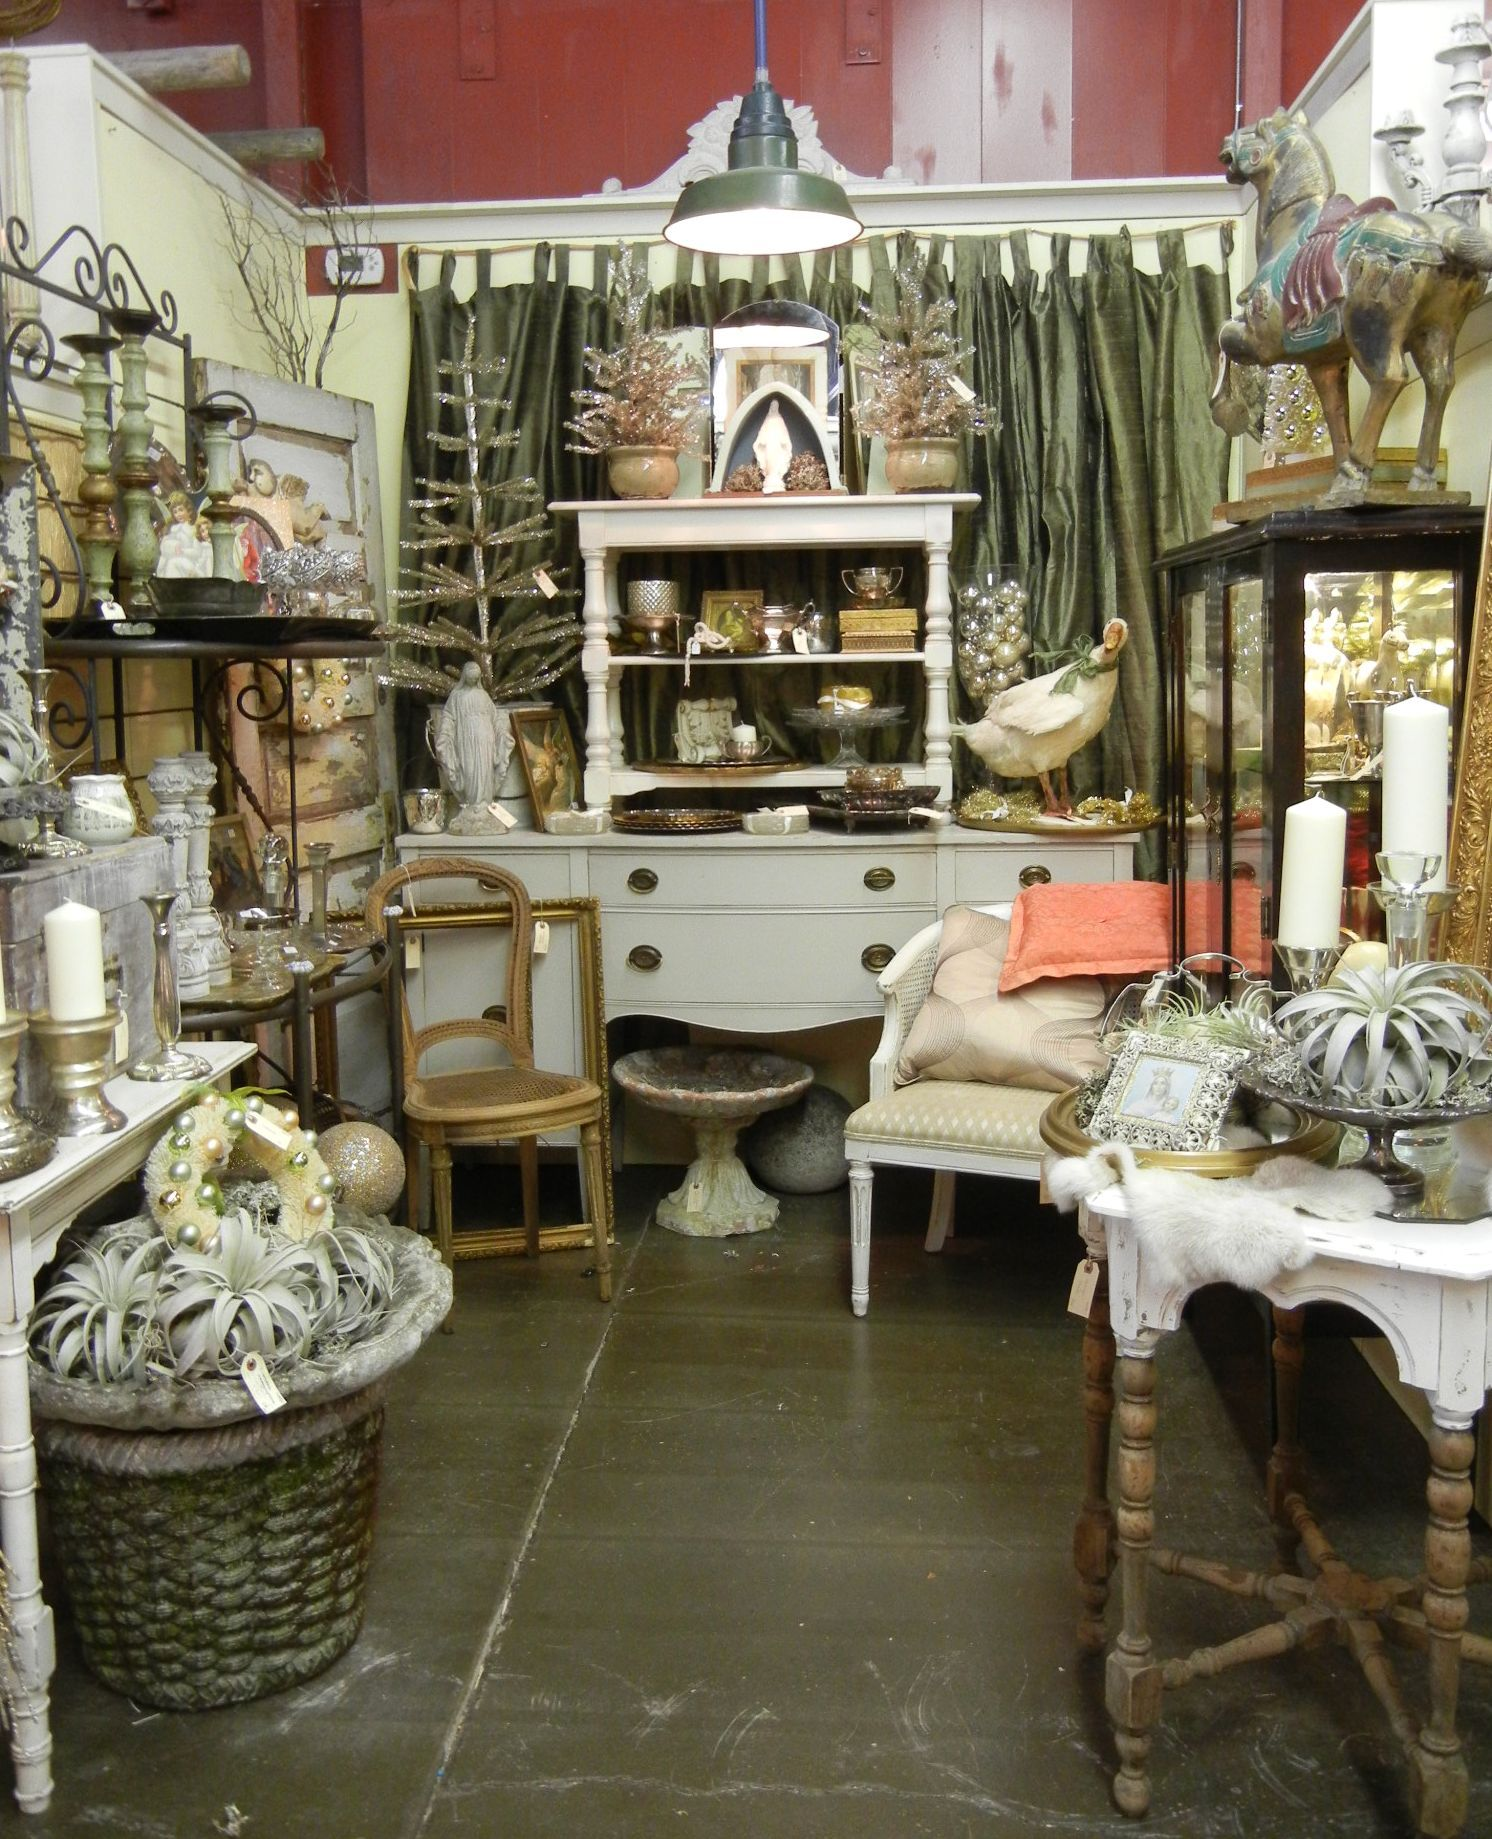 The Decorating Store: Antique Booth Decorating Ideas